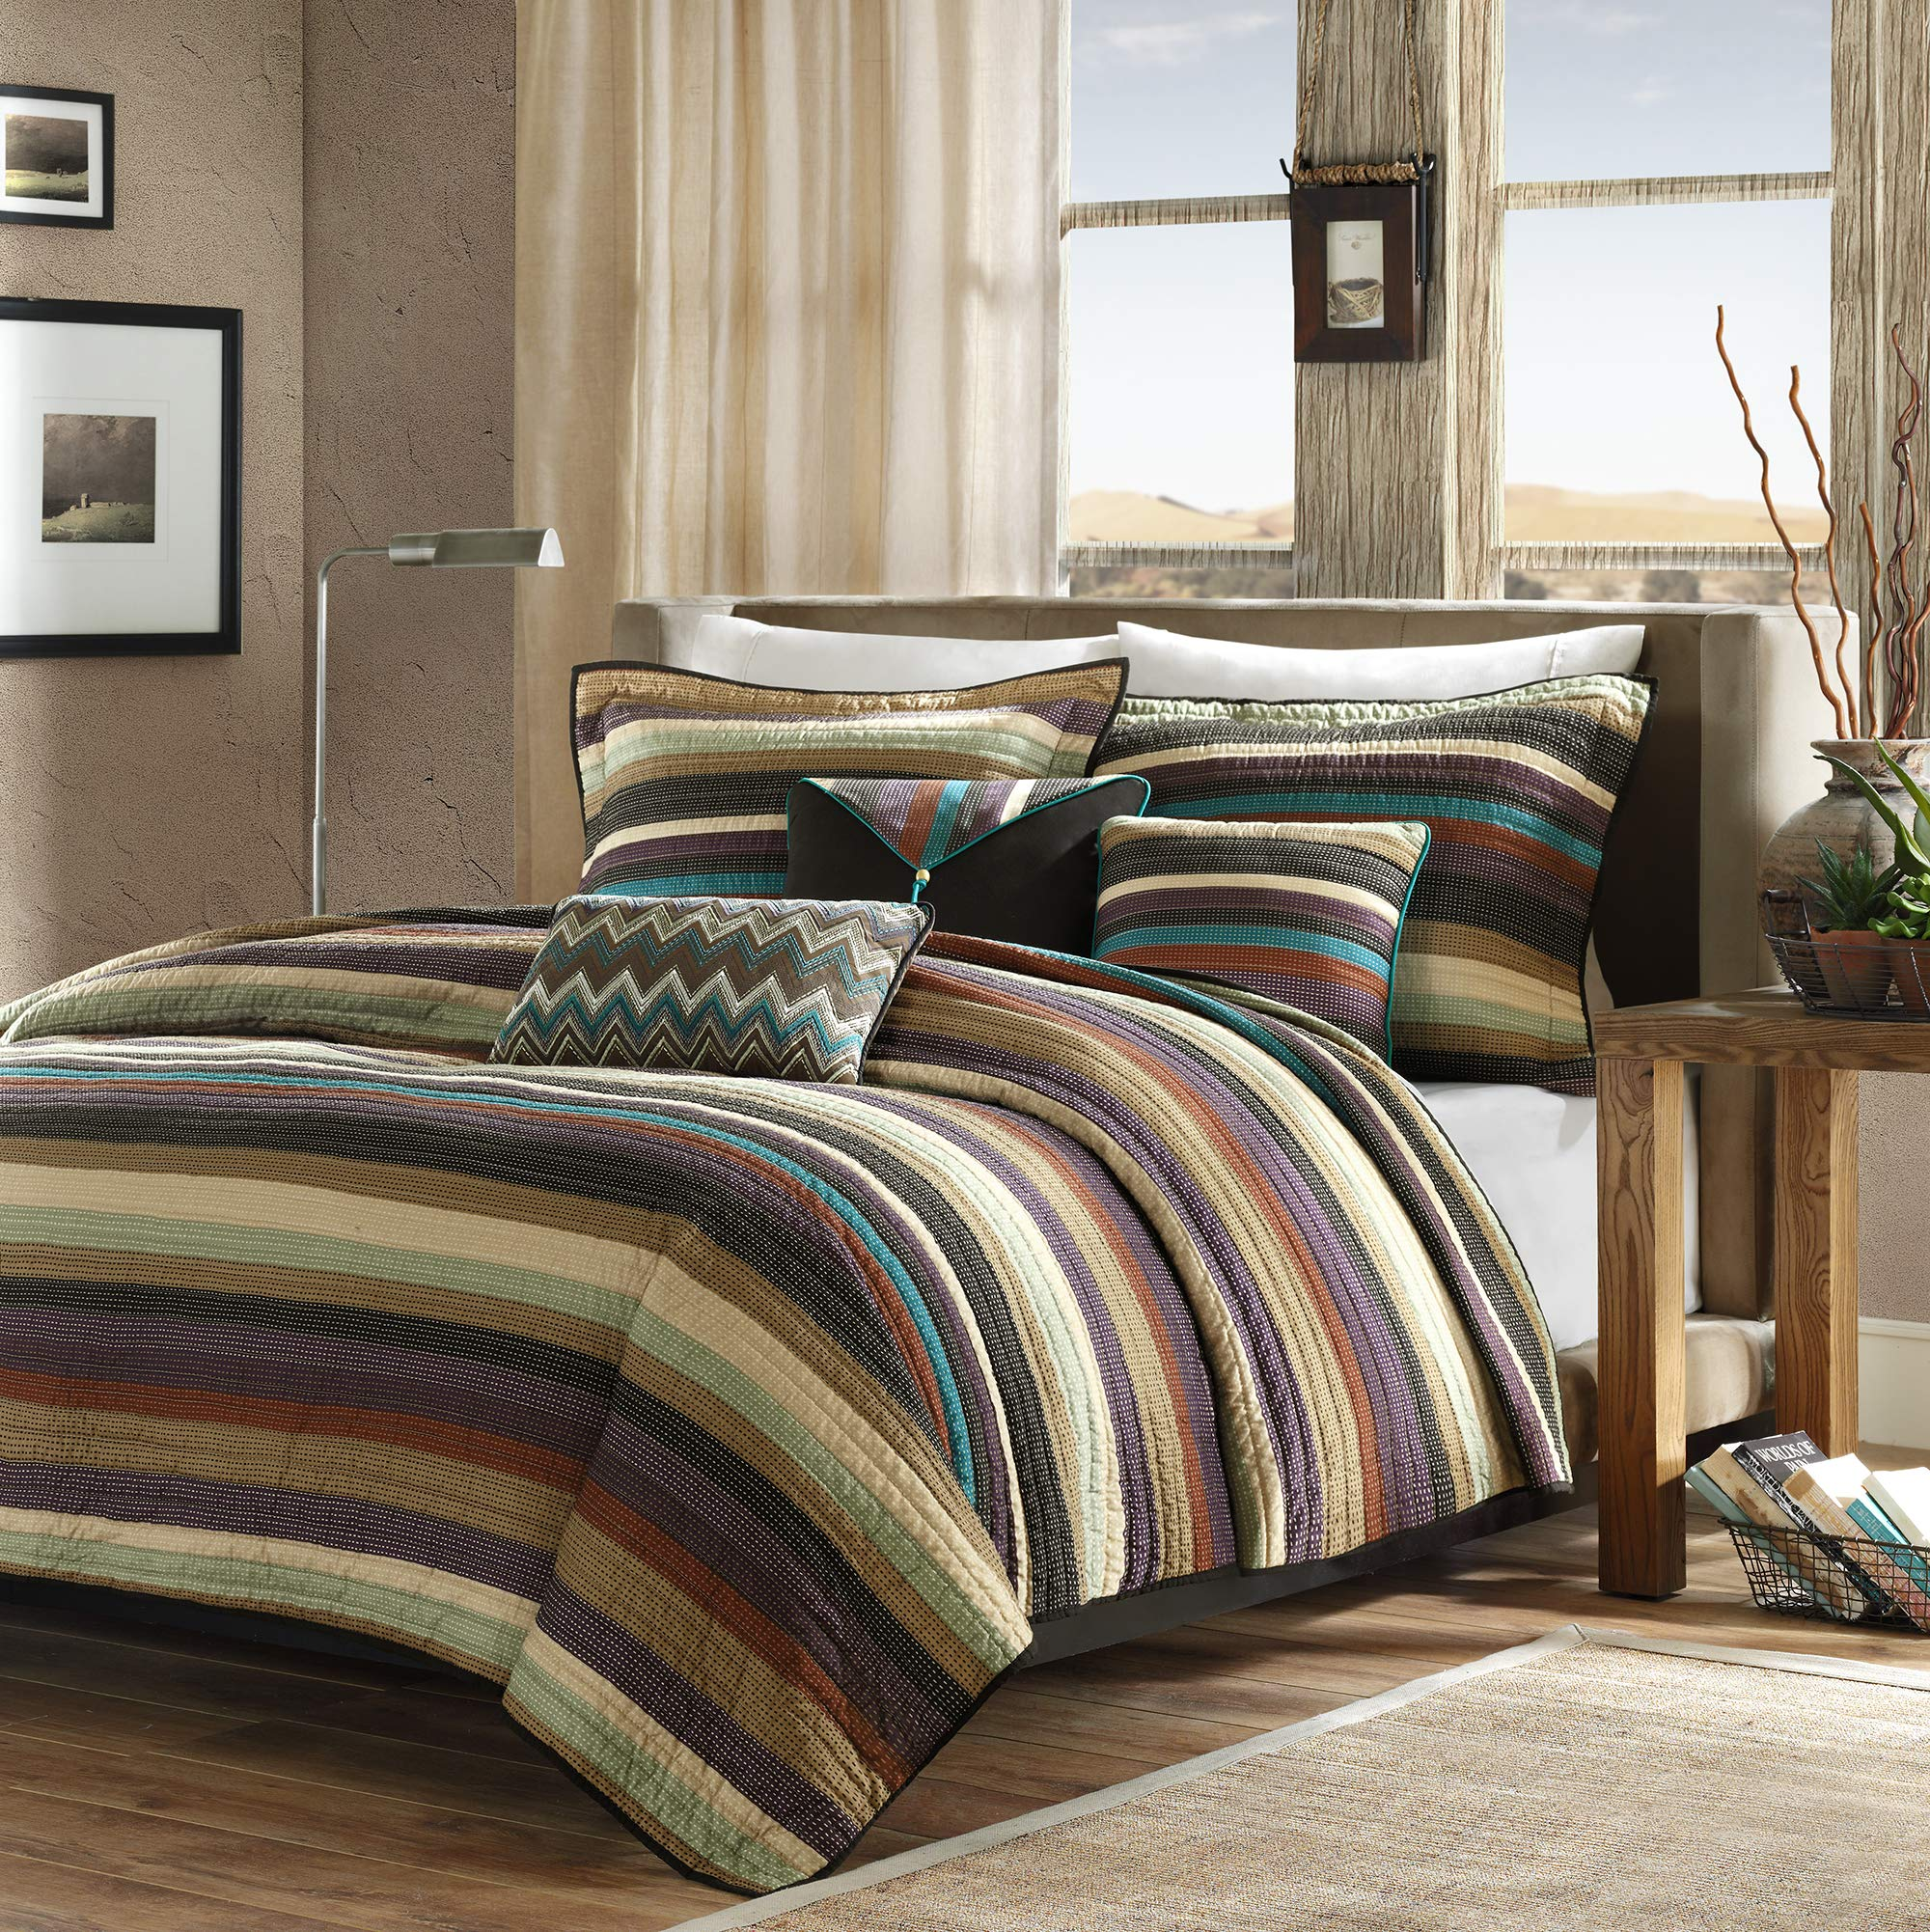 Madison Park Yosemite Quilted Bedding Set, King/Cal King, Multi by Madison Park (Image #1)